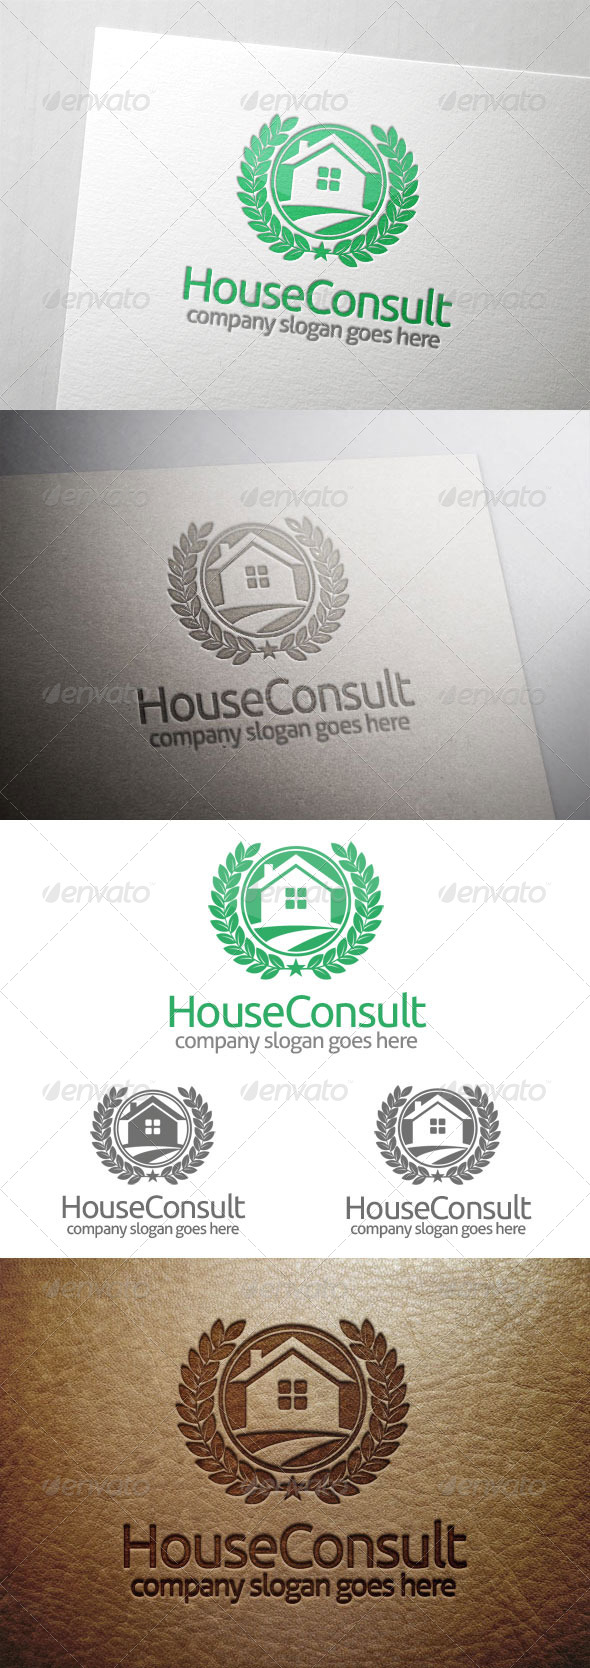 House Consult Logo - Buildings Logo Templates